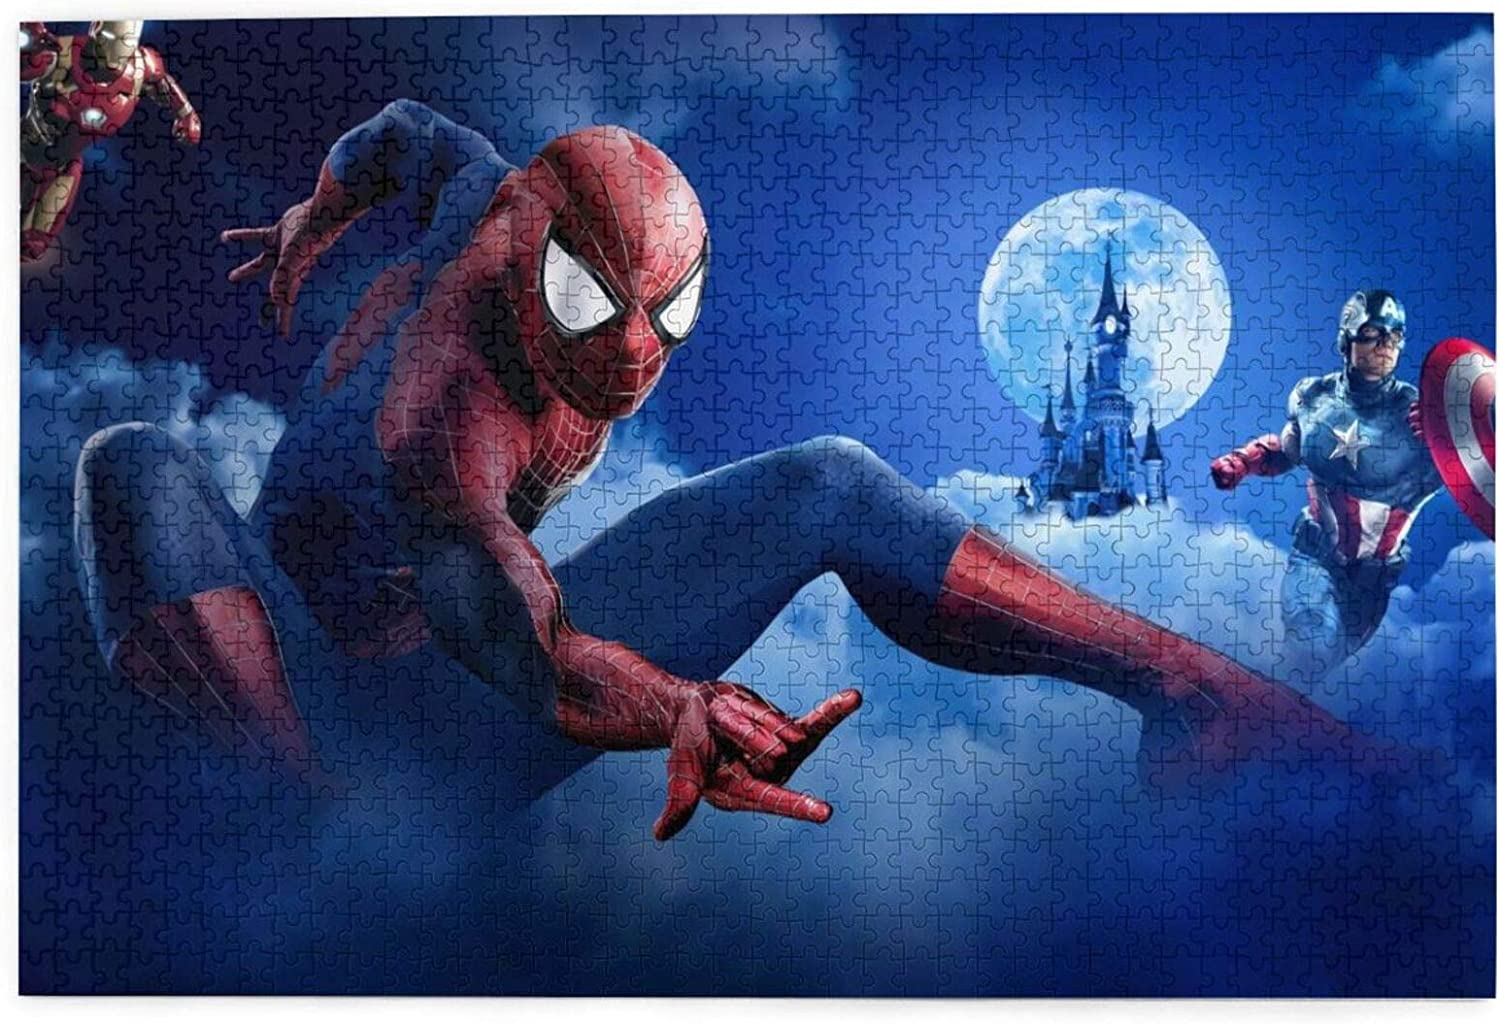 Fly-Le 1,000//500//300 Pieces of Amazing Spiderman Pieces are Waiting for You to Piece Together to Stimulate Your Imagination